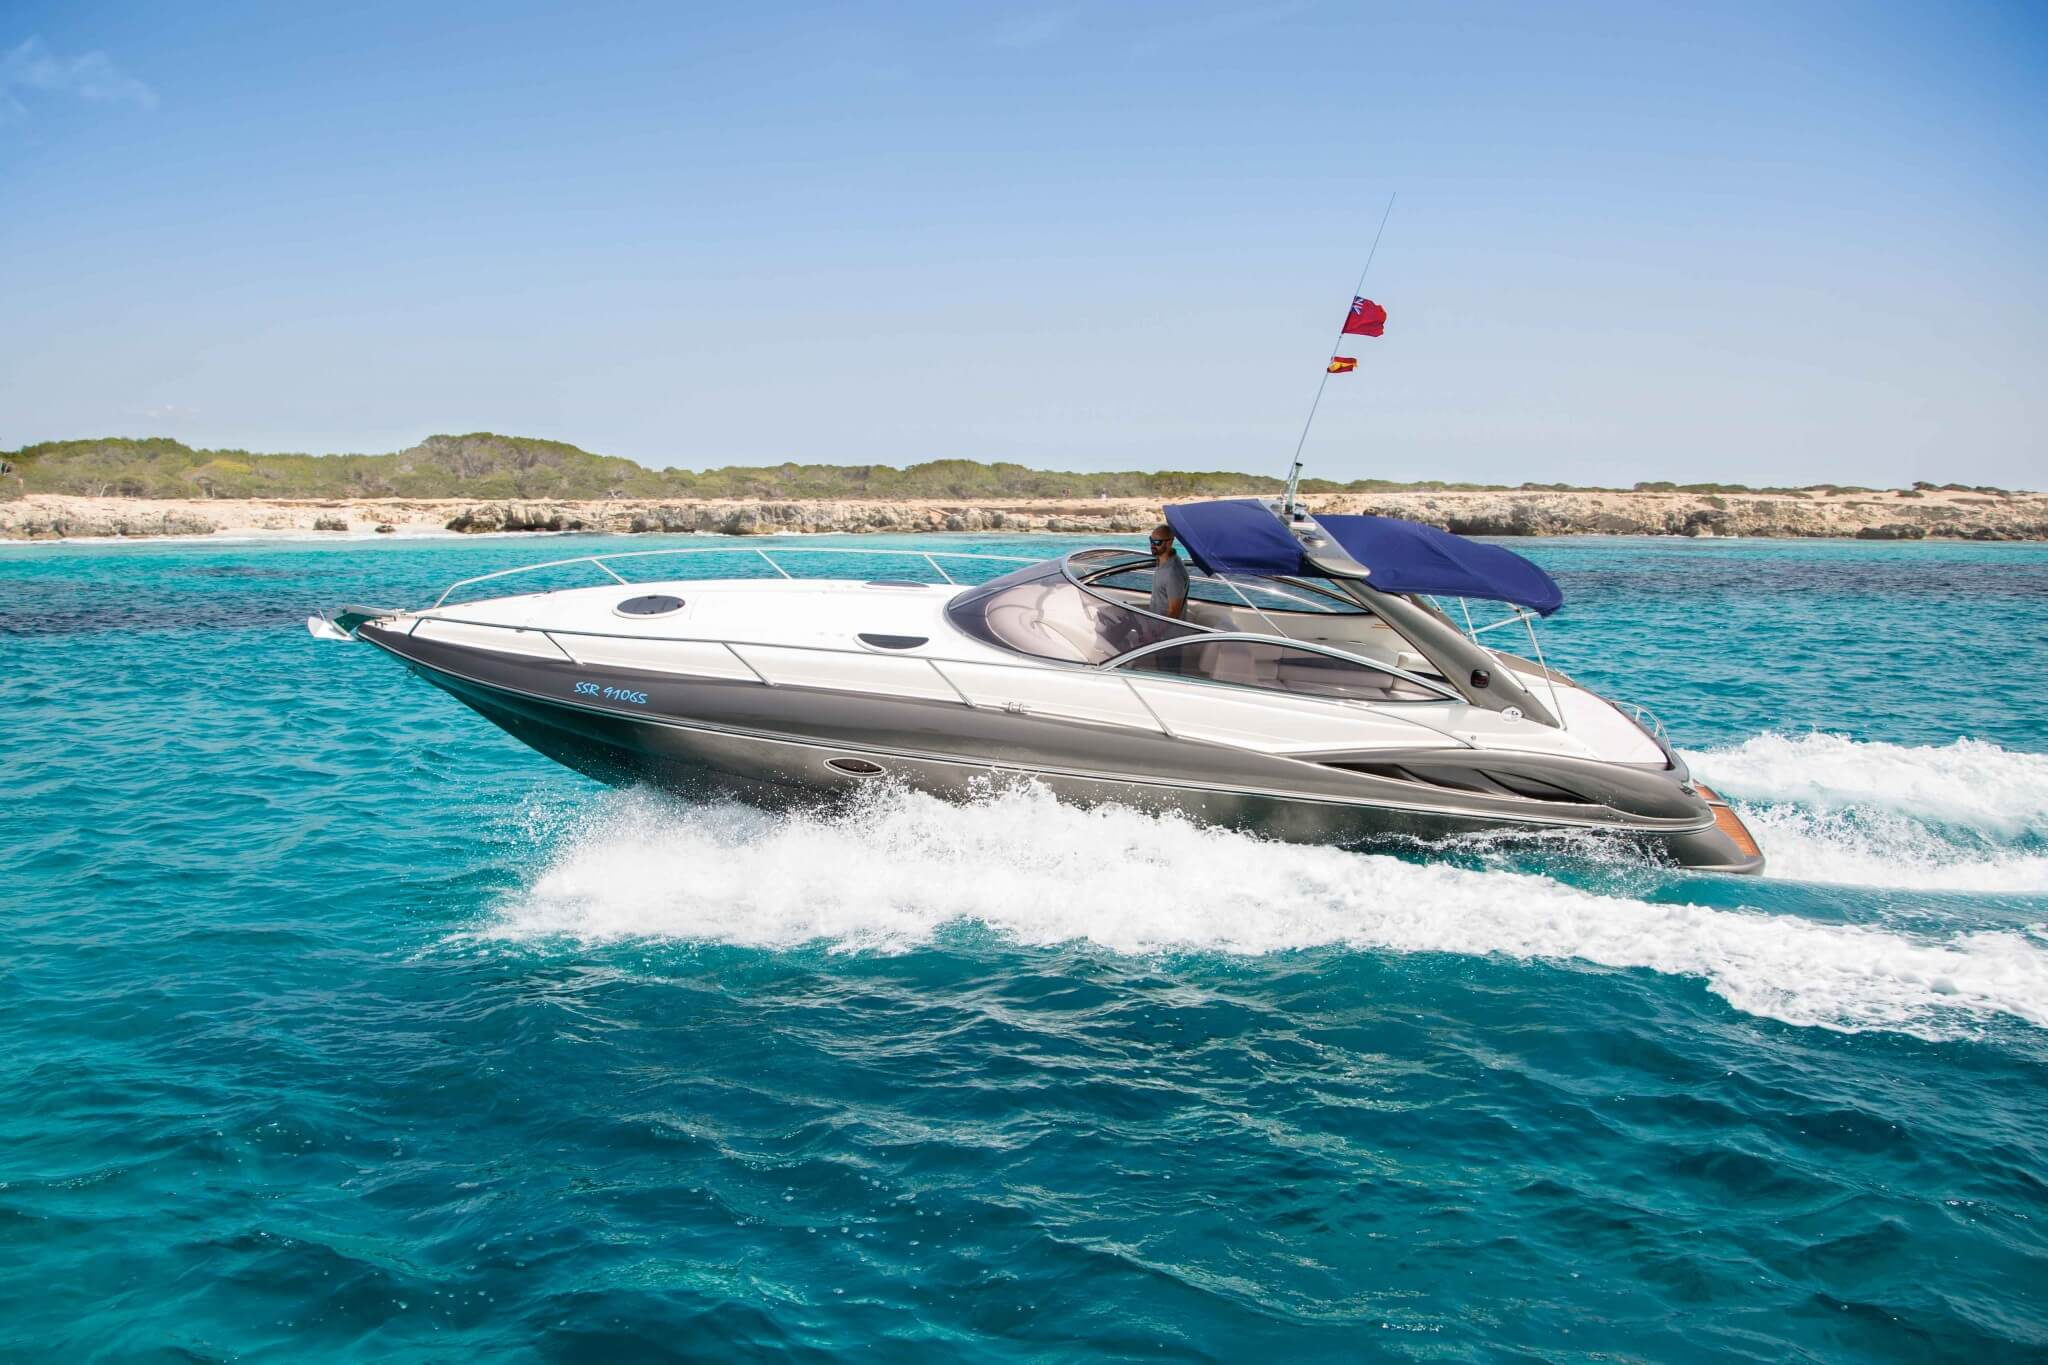 The Sunseeker Superhawk 34 cruising in Ibiza